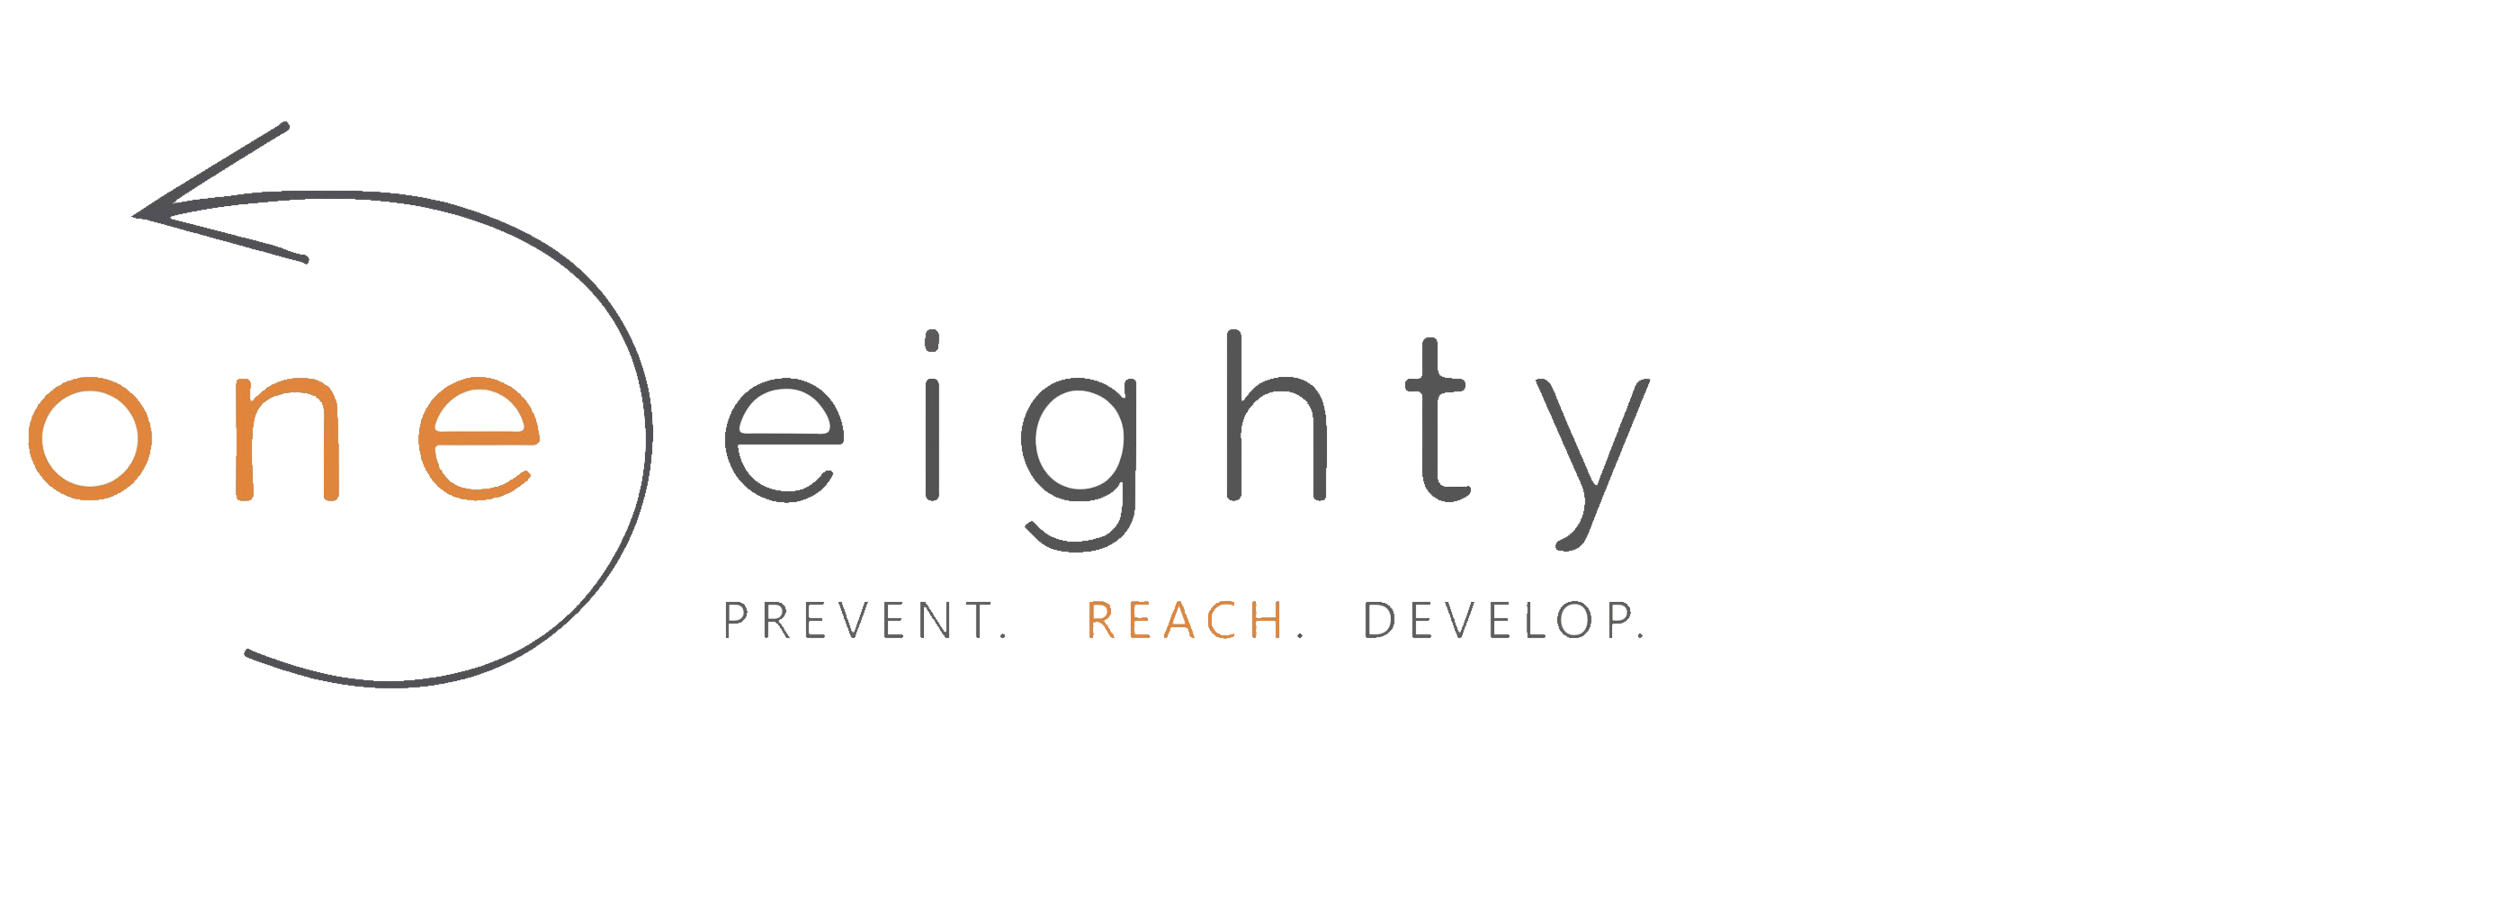 One Eighty - 180 Ministries work toward restoration of the individual, family, and home in the Quad City area, through their Prevent, Reach, and Develop initiatives.